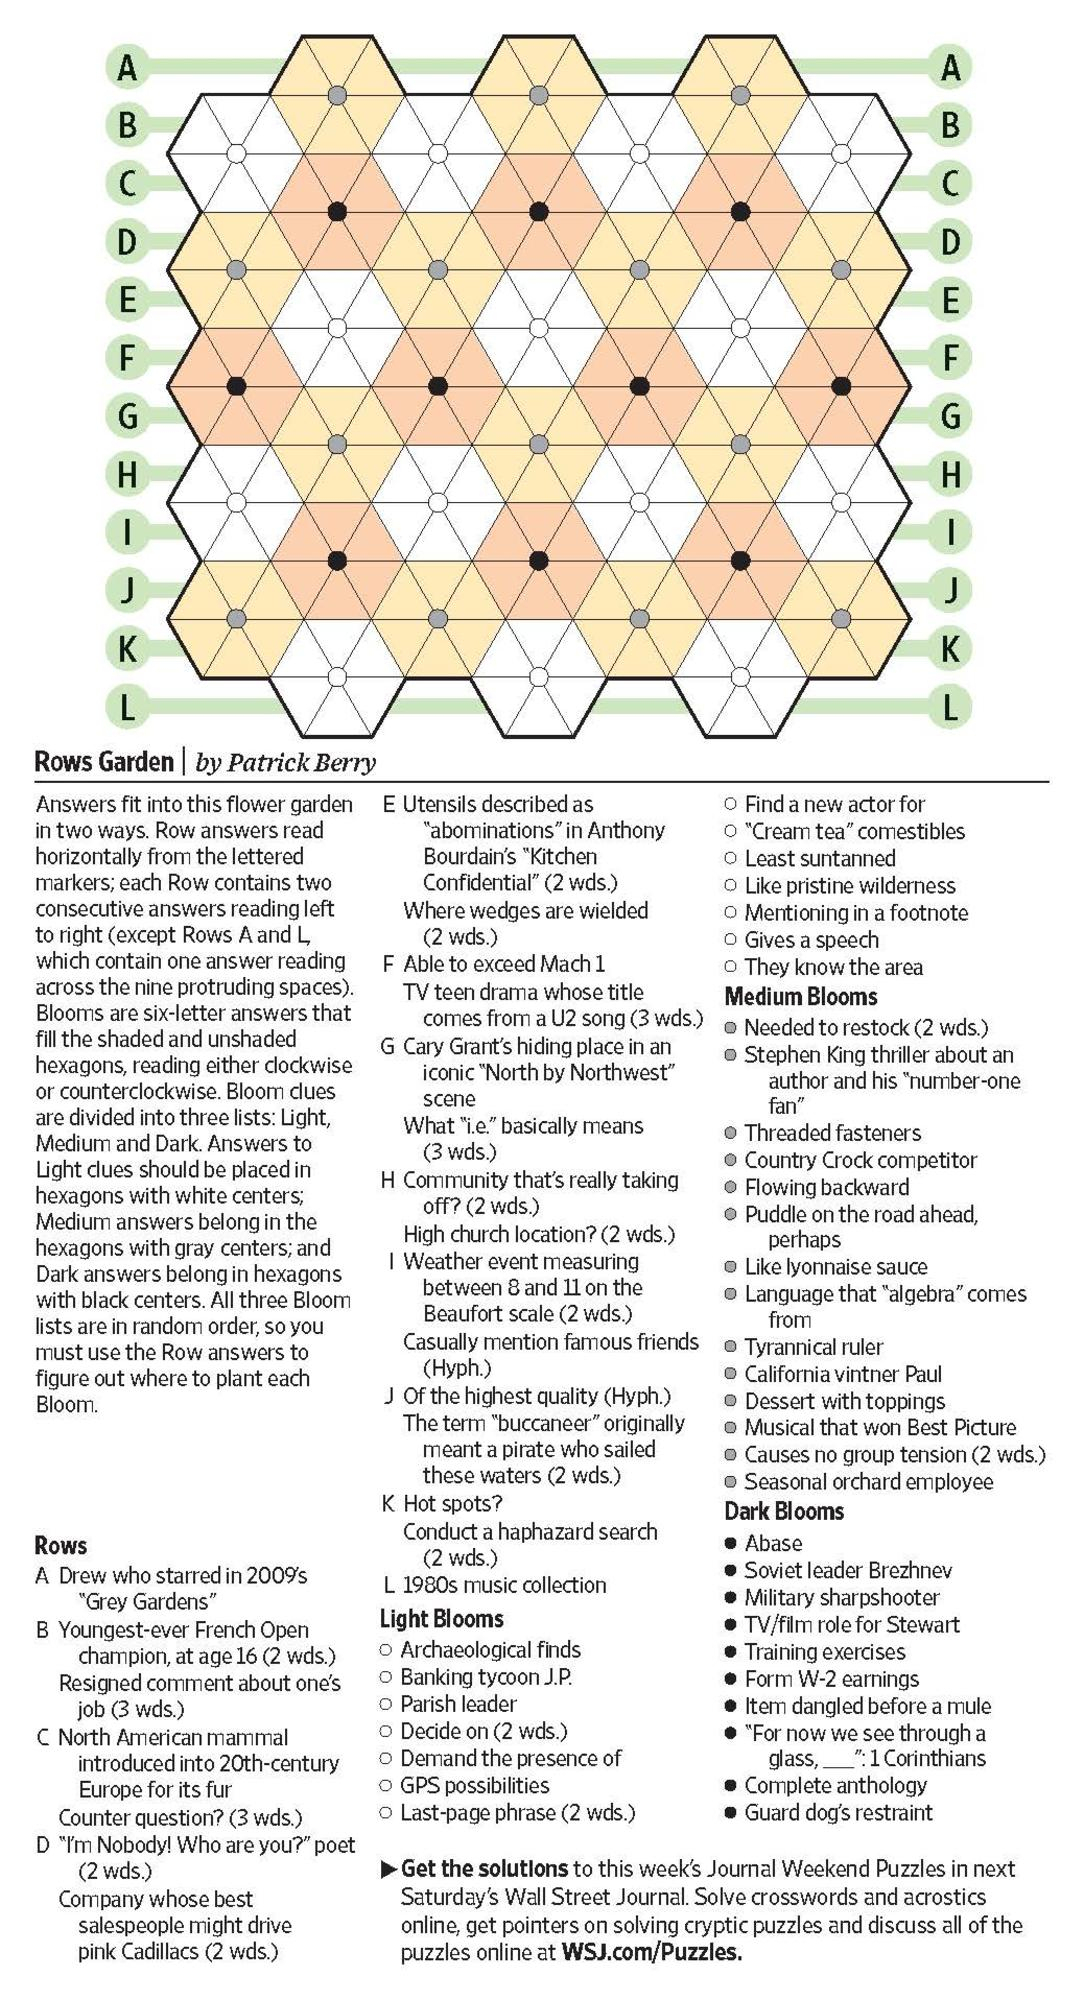 Rows Garden (Saturday Puzzle) - Wsj Puzzles - Wsj - Printable Wall Street Journal Crossword Puzzle